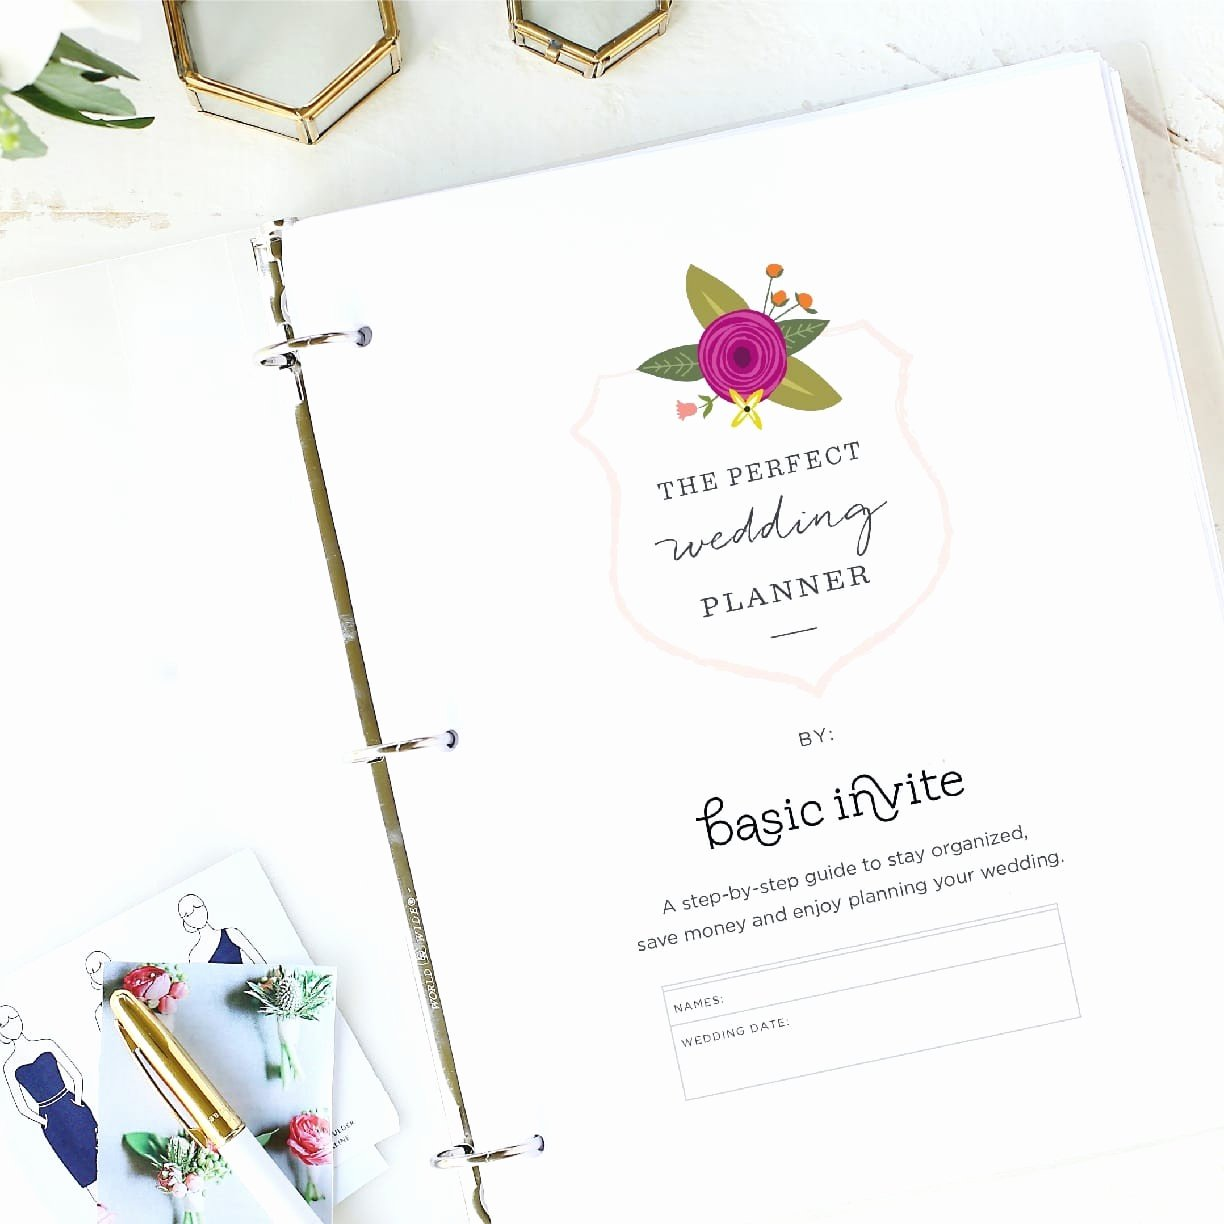 Wedding Planning Template Free New Wedding Planner Printable by Basic Invite